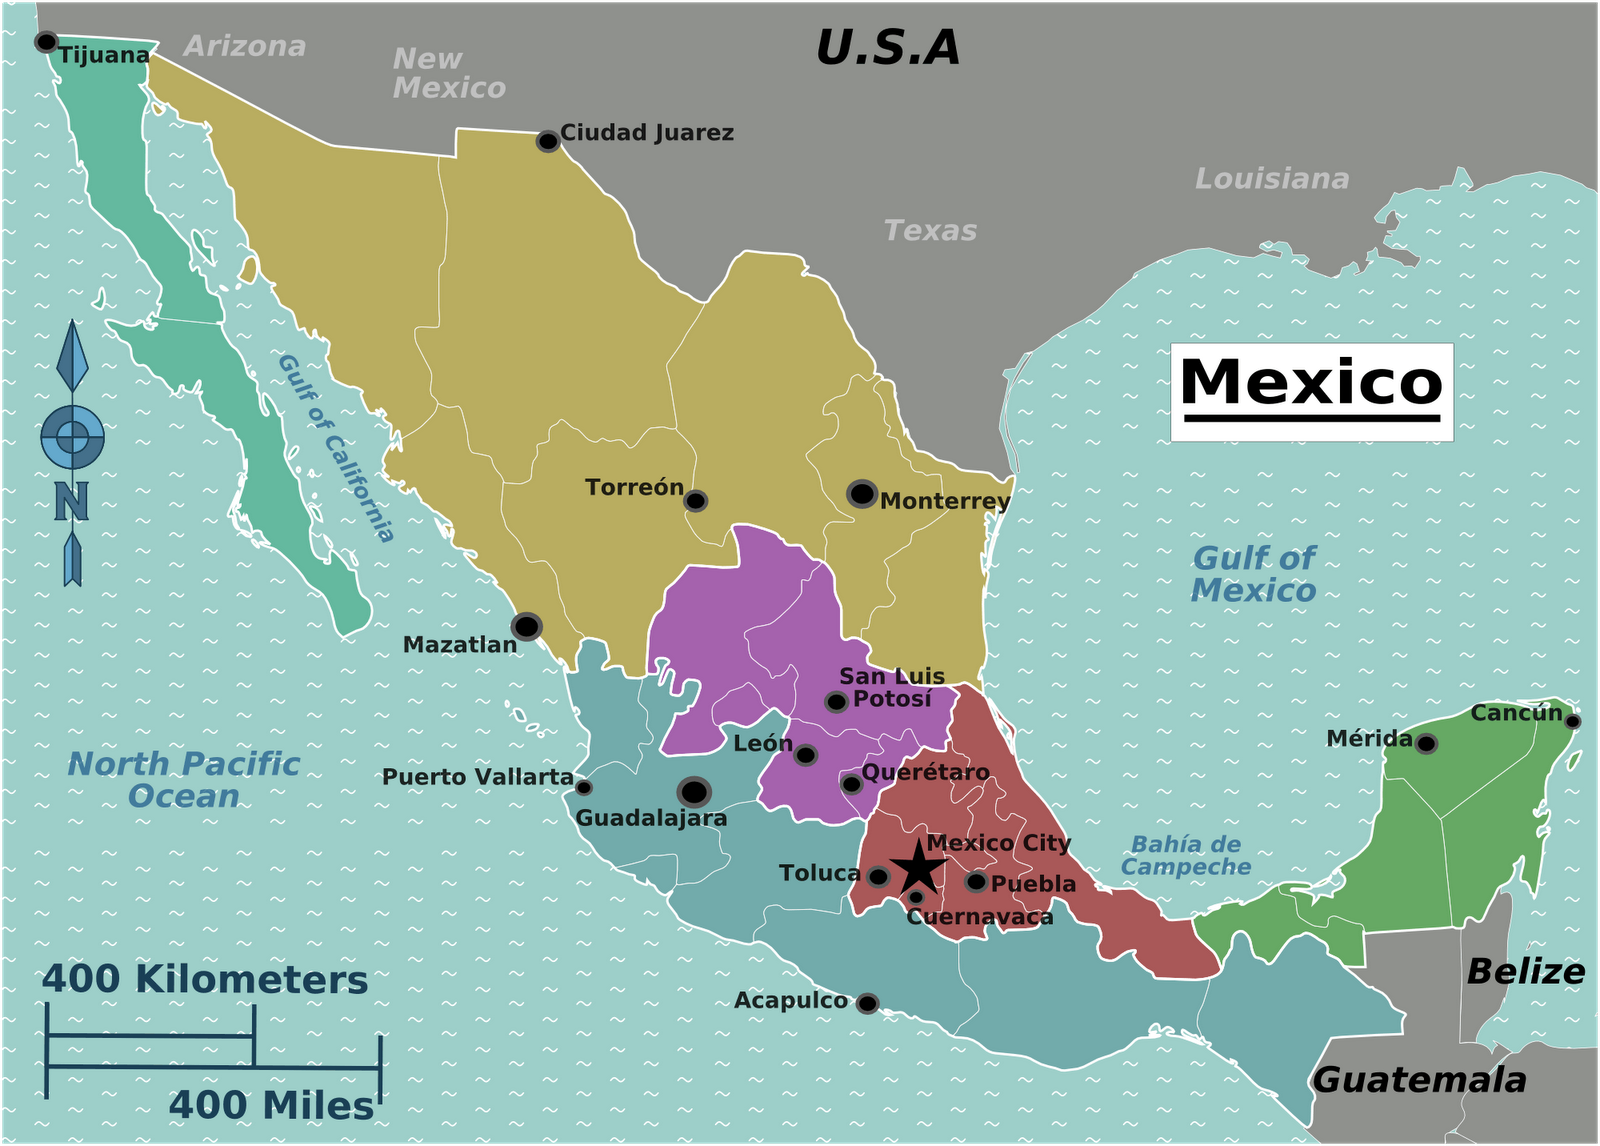 a break from the usual corn tortillas regions in the north are going to have dishes with more meat in them as these areas produce a great deal of beef